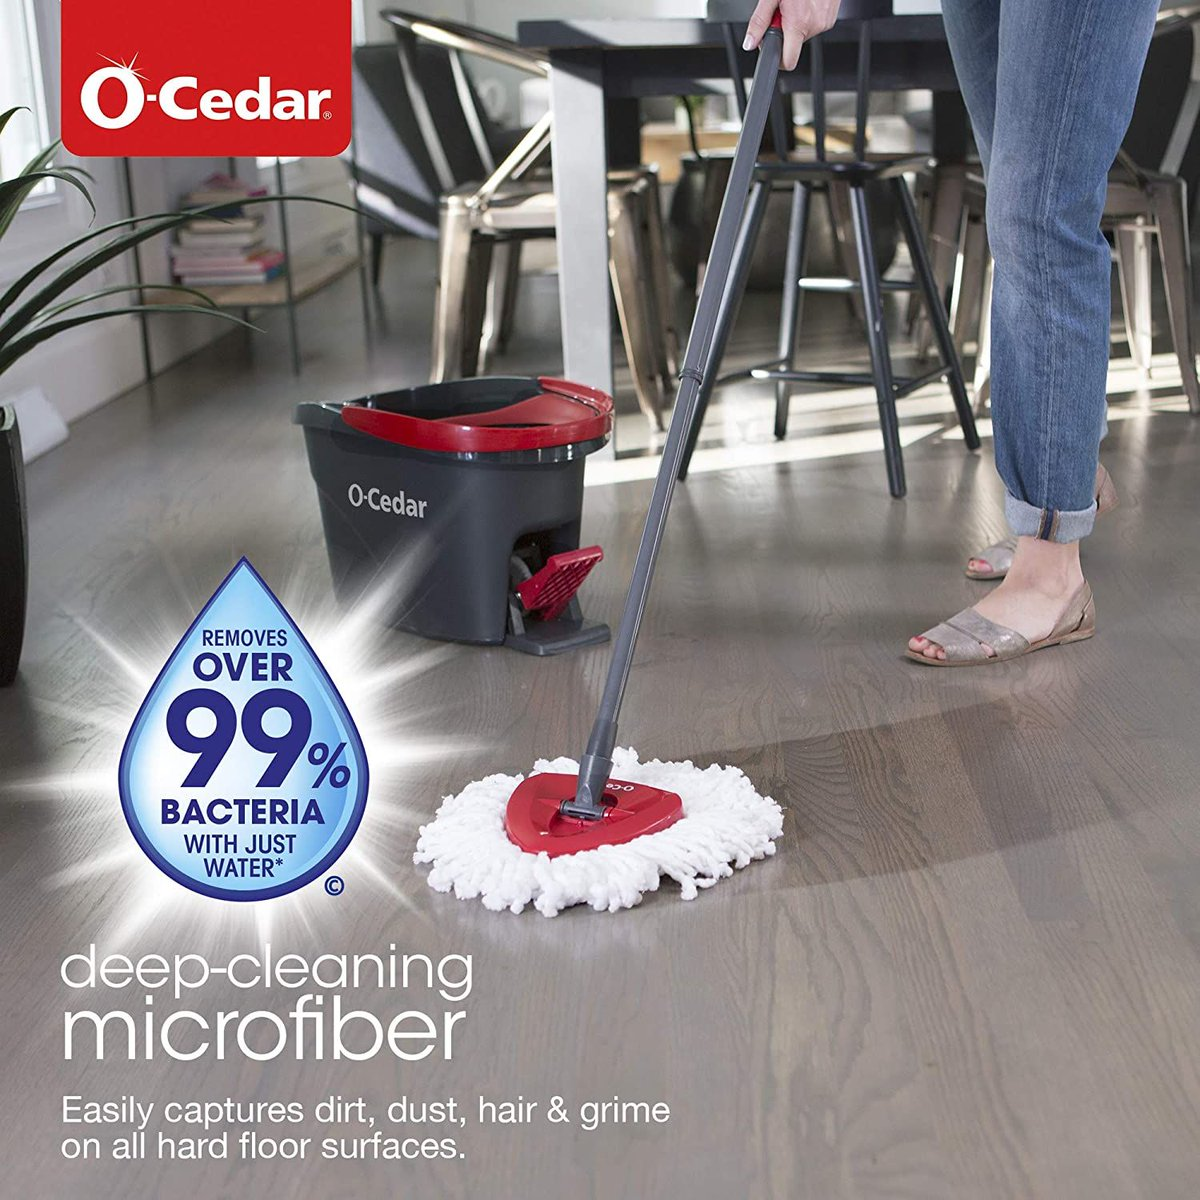 O-Cedar EasyWring Microfiber Spin Mop, Bucket Floor Cleaning System  Get it for $29.98!  2